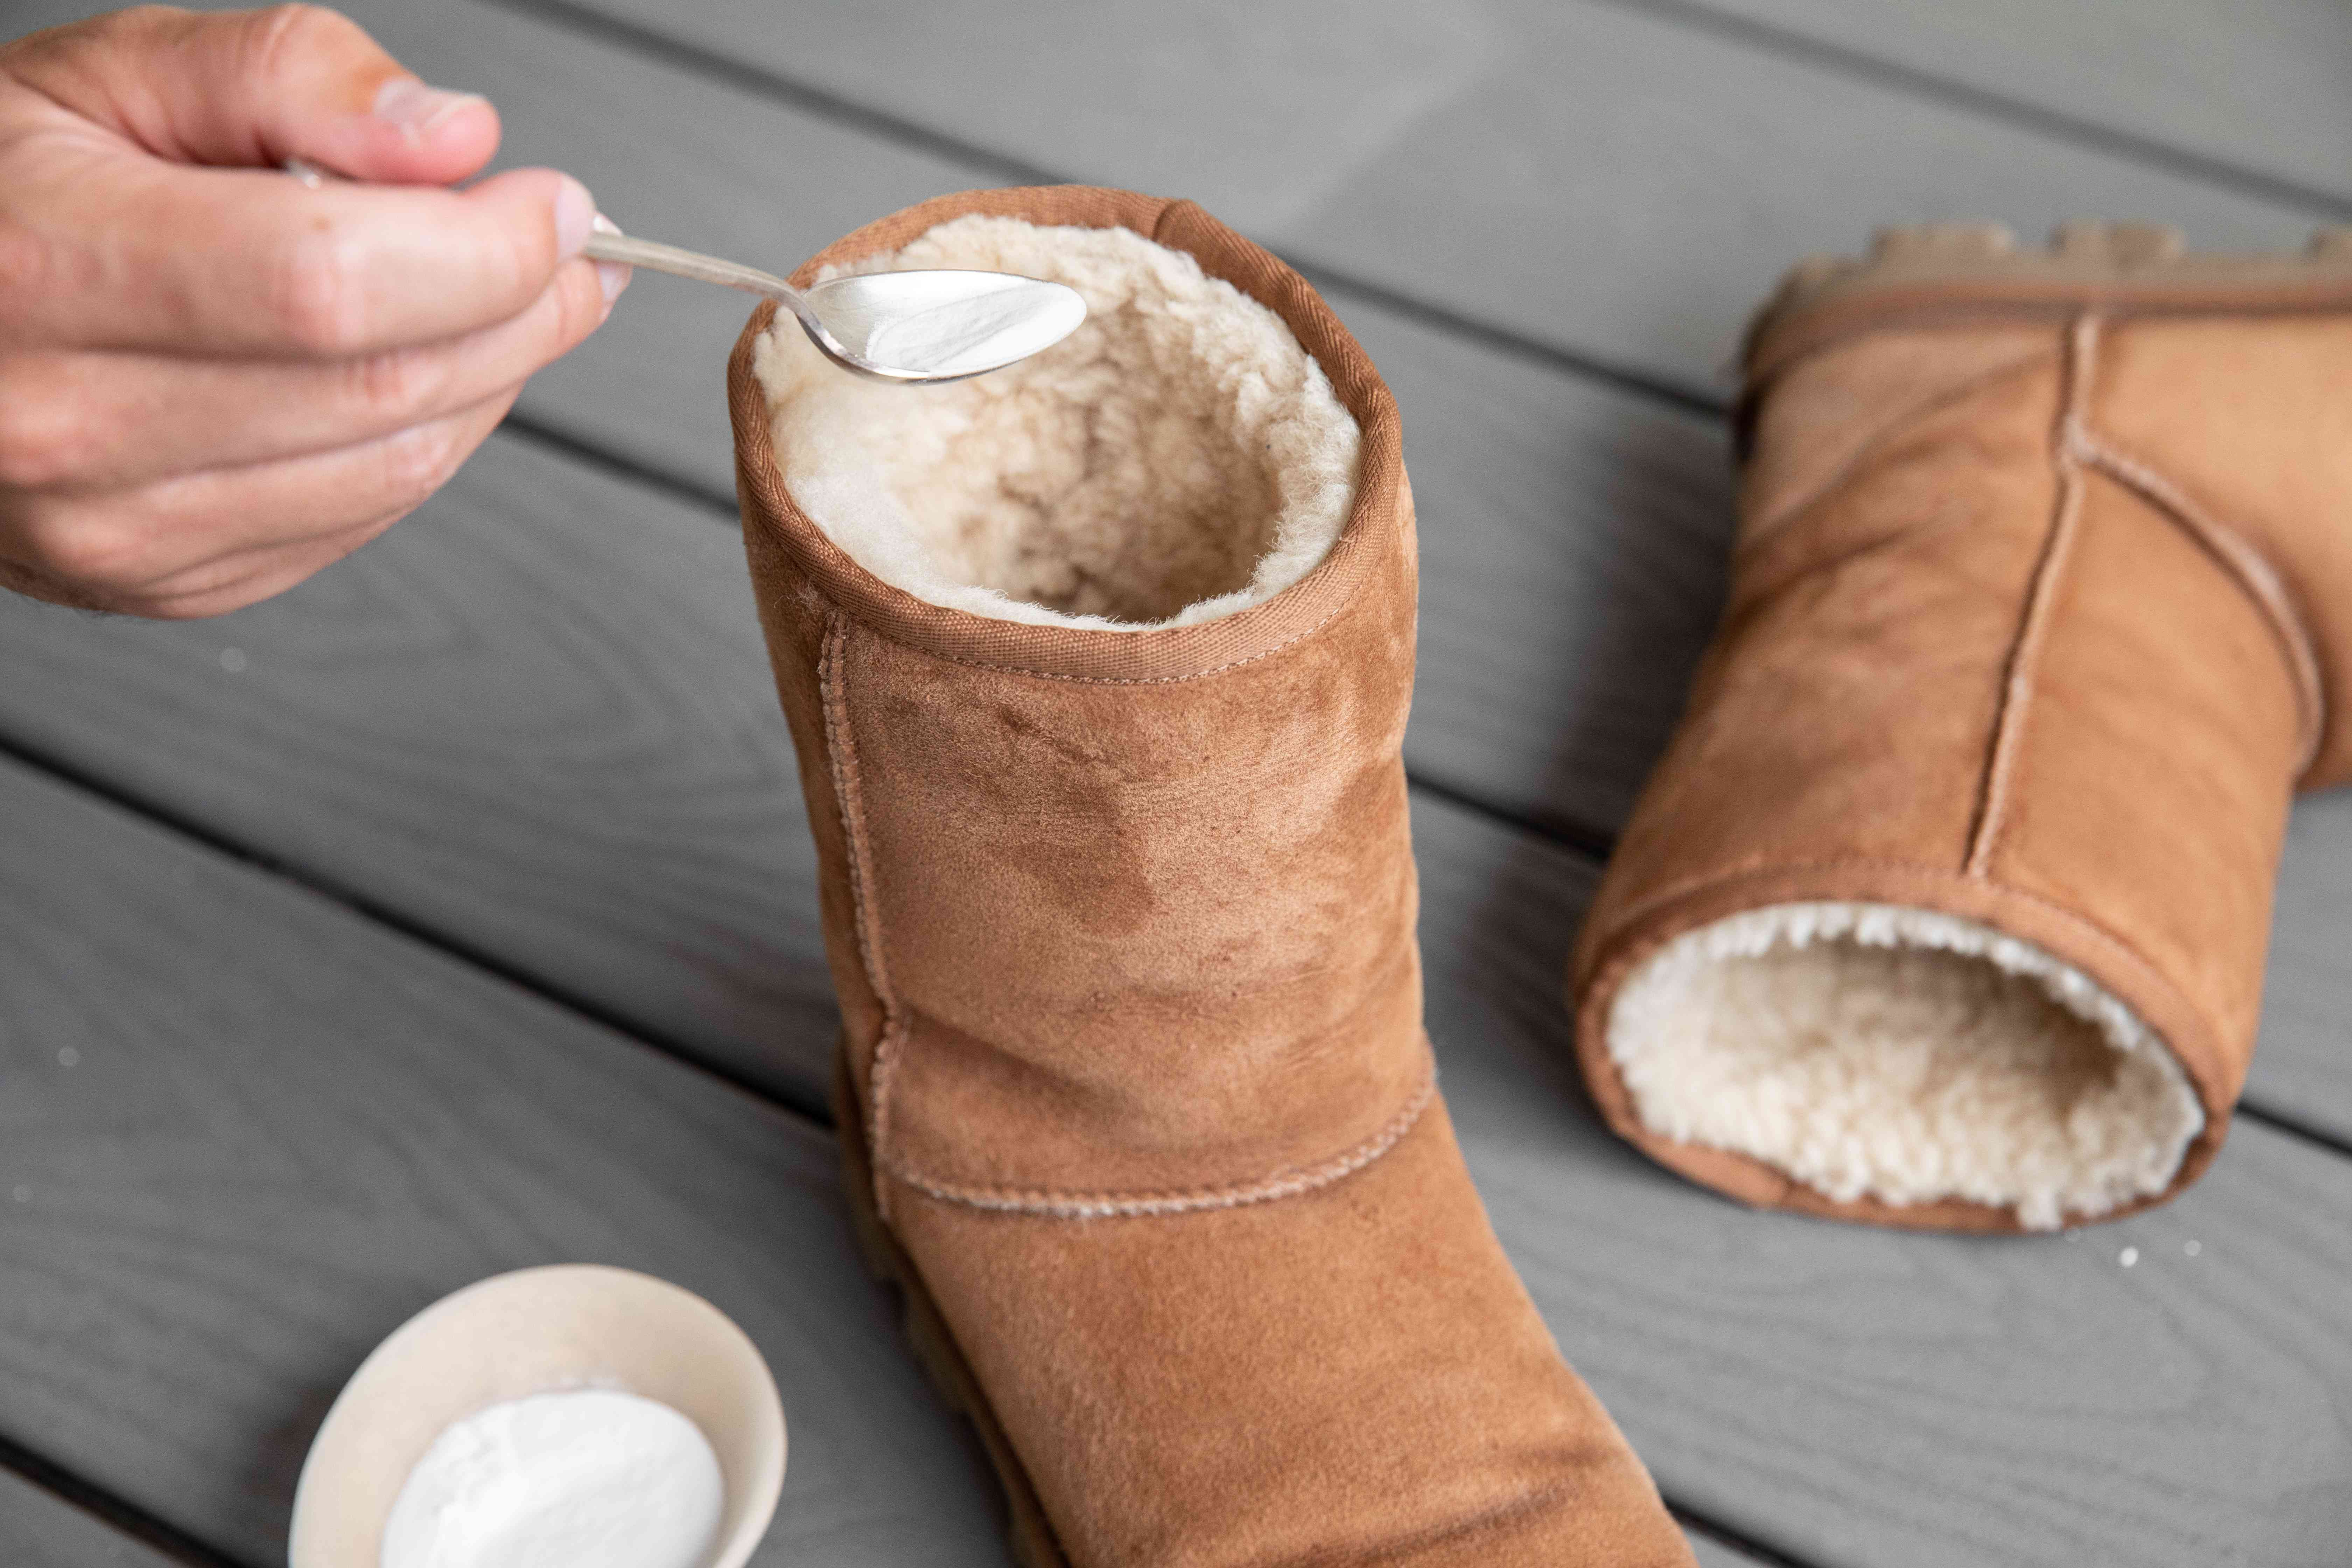 Someone spooning baking soda into an Ugg boot